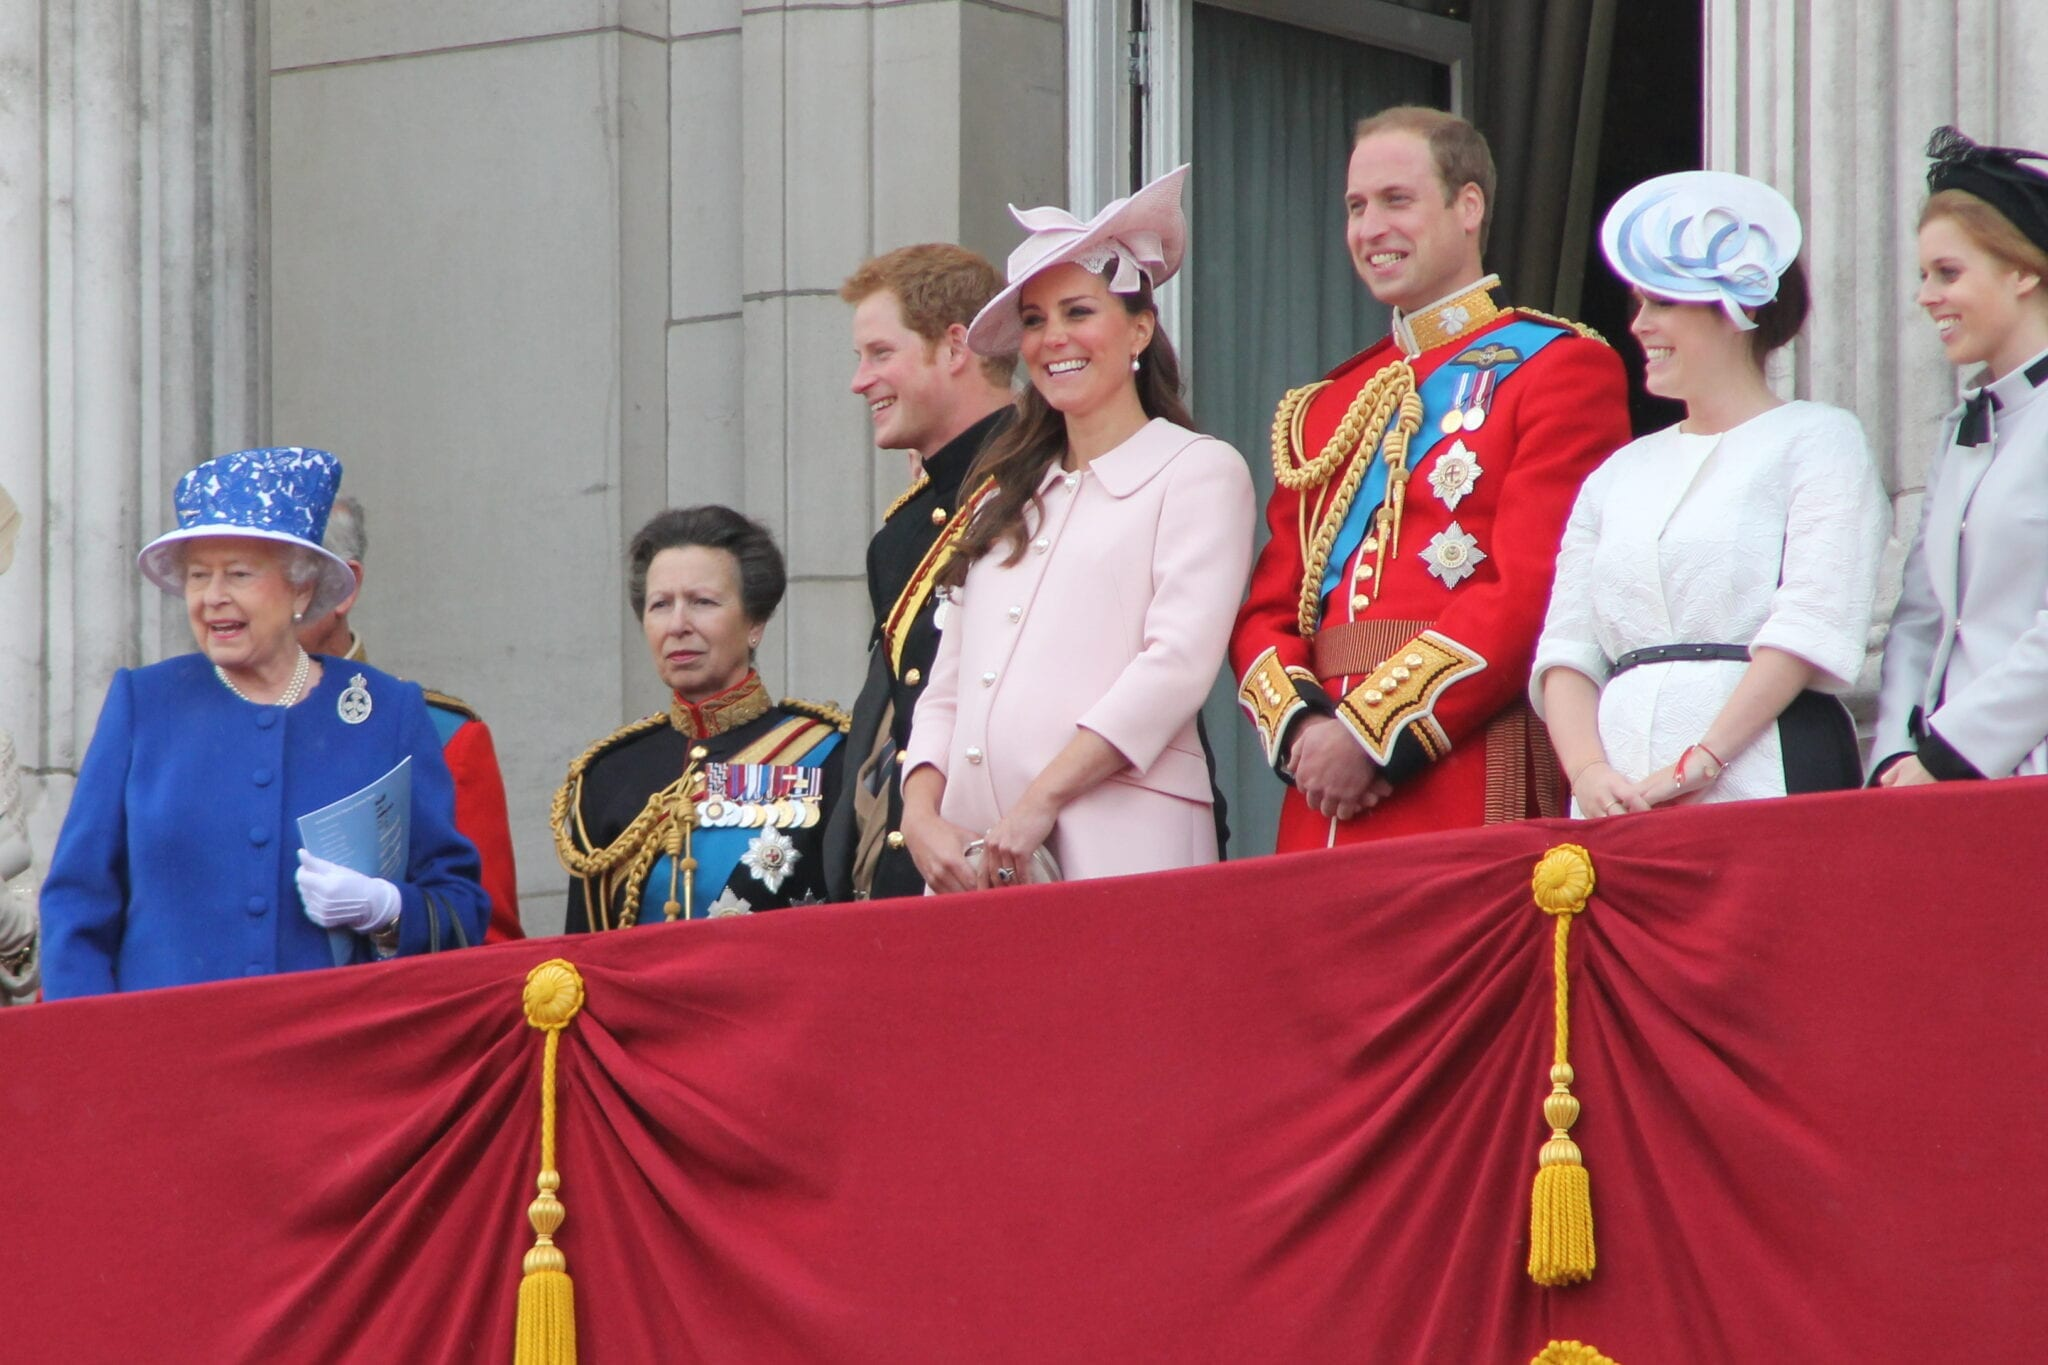 LGBT Royals: A Promising Outlook for a New Style of Monarchy?